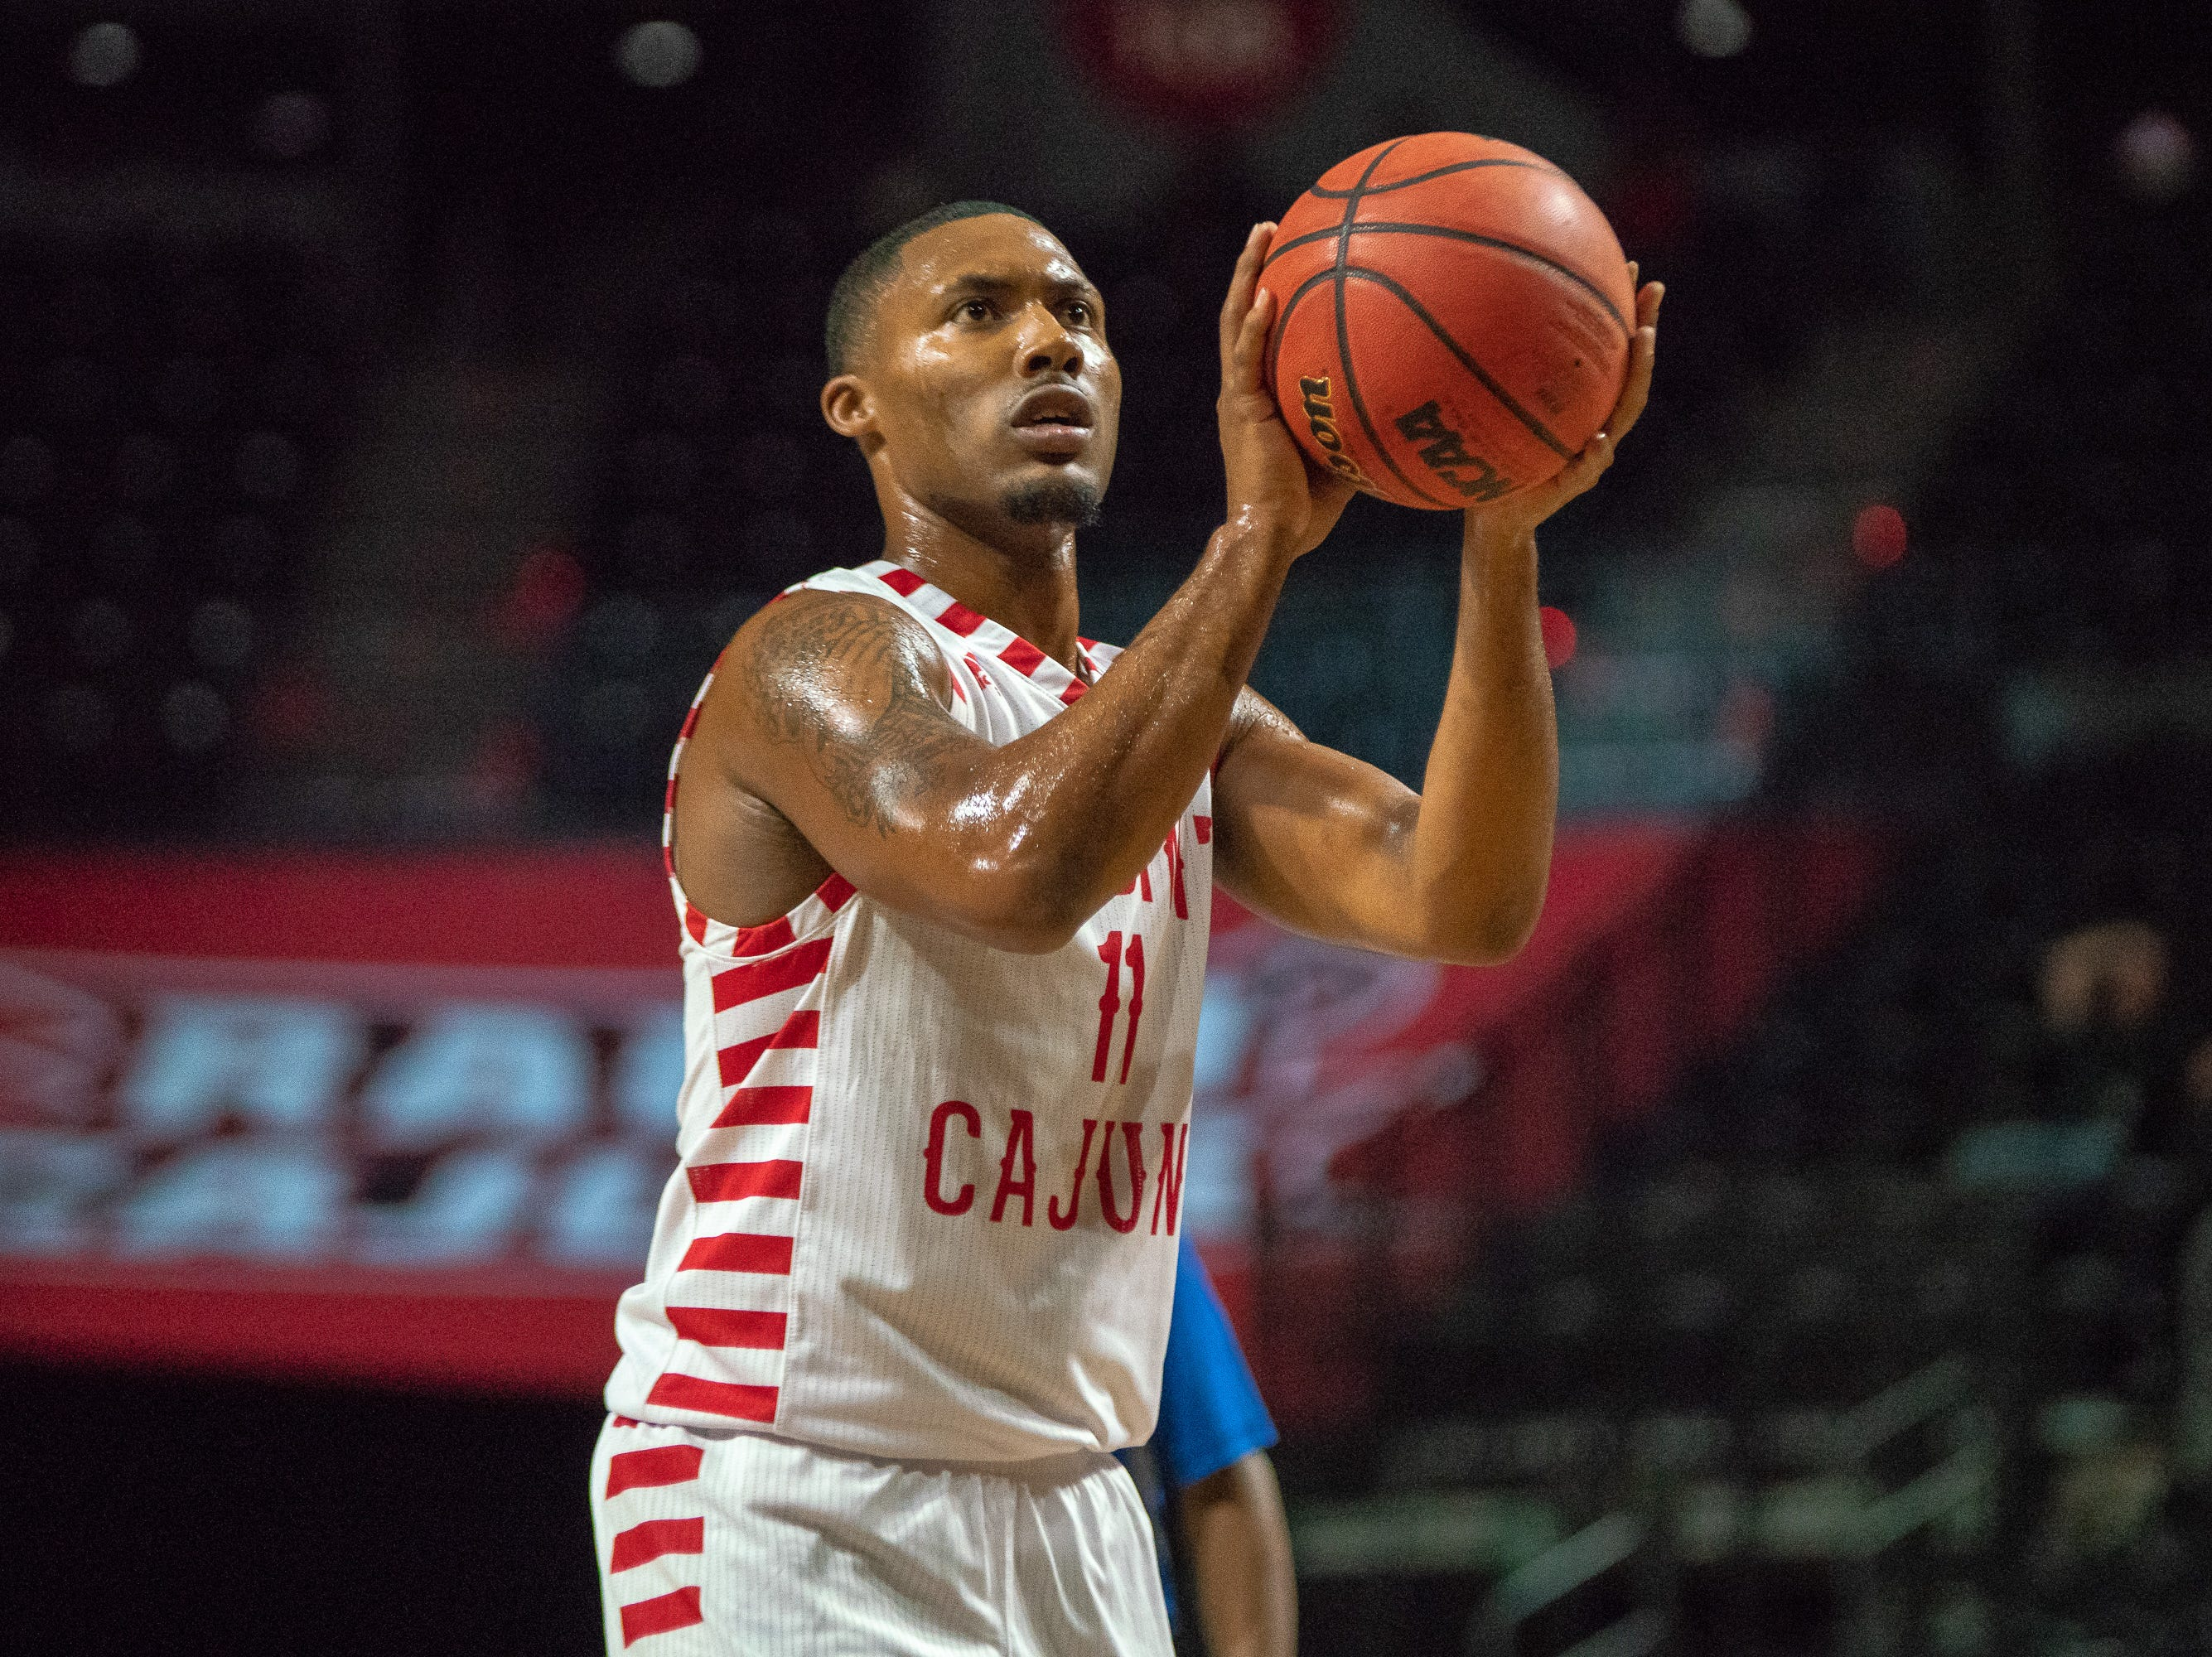 UL's Jerekius Davis shoots a free-throw as the Ragin' Cajuns take on the University of the Virgin Islands Buccaneers at the Cajundome on Nov. 6, 2018.